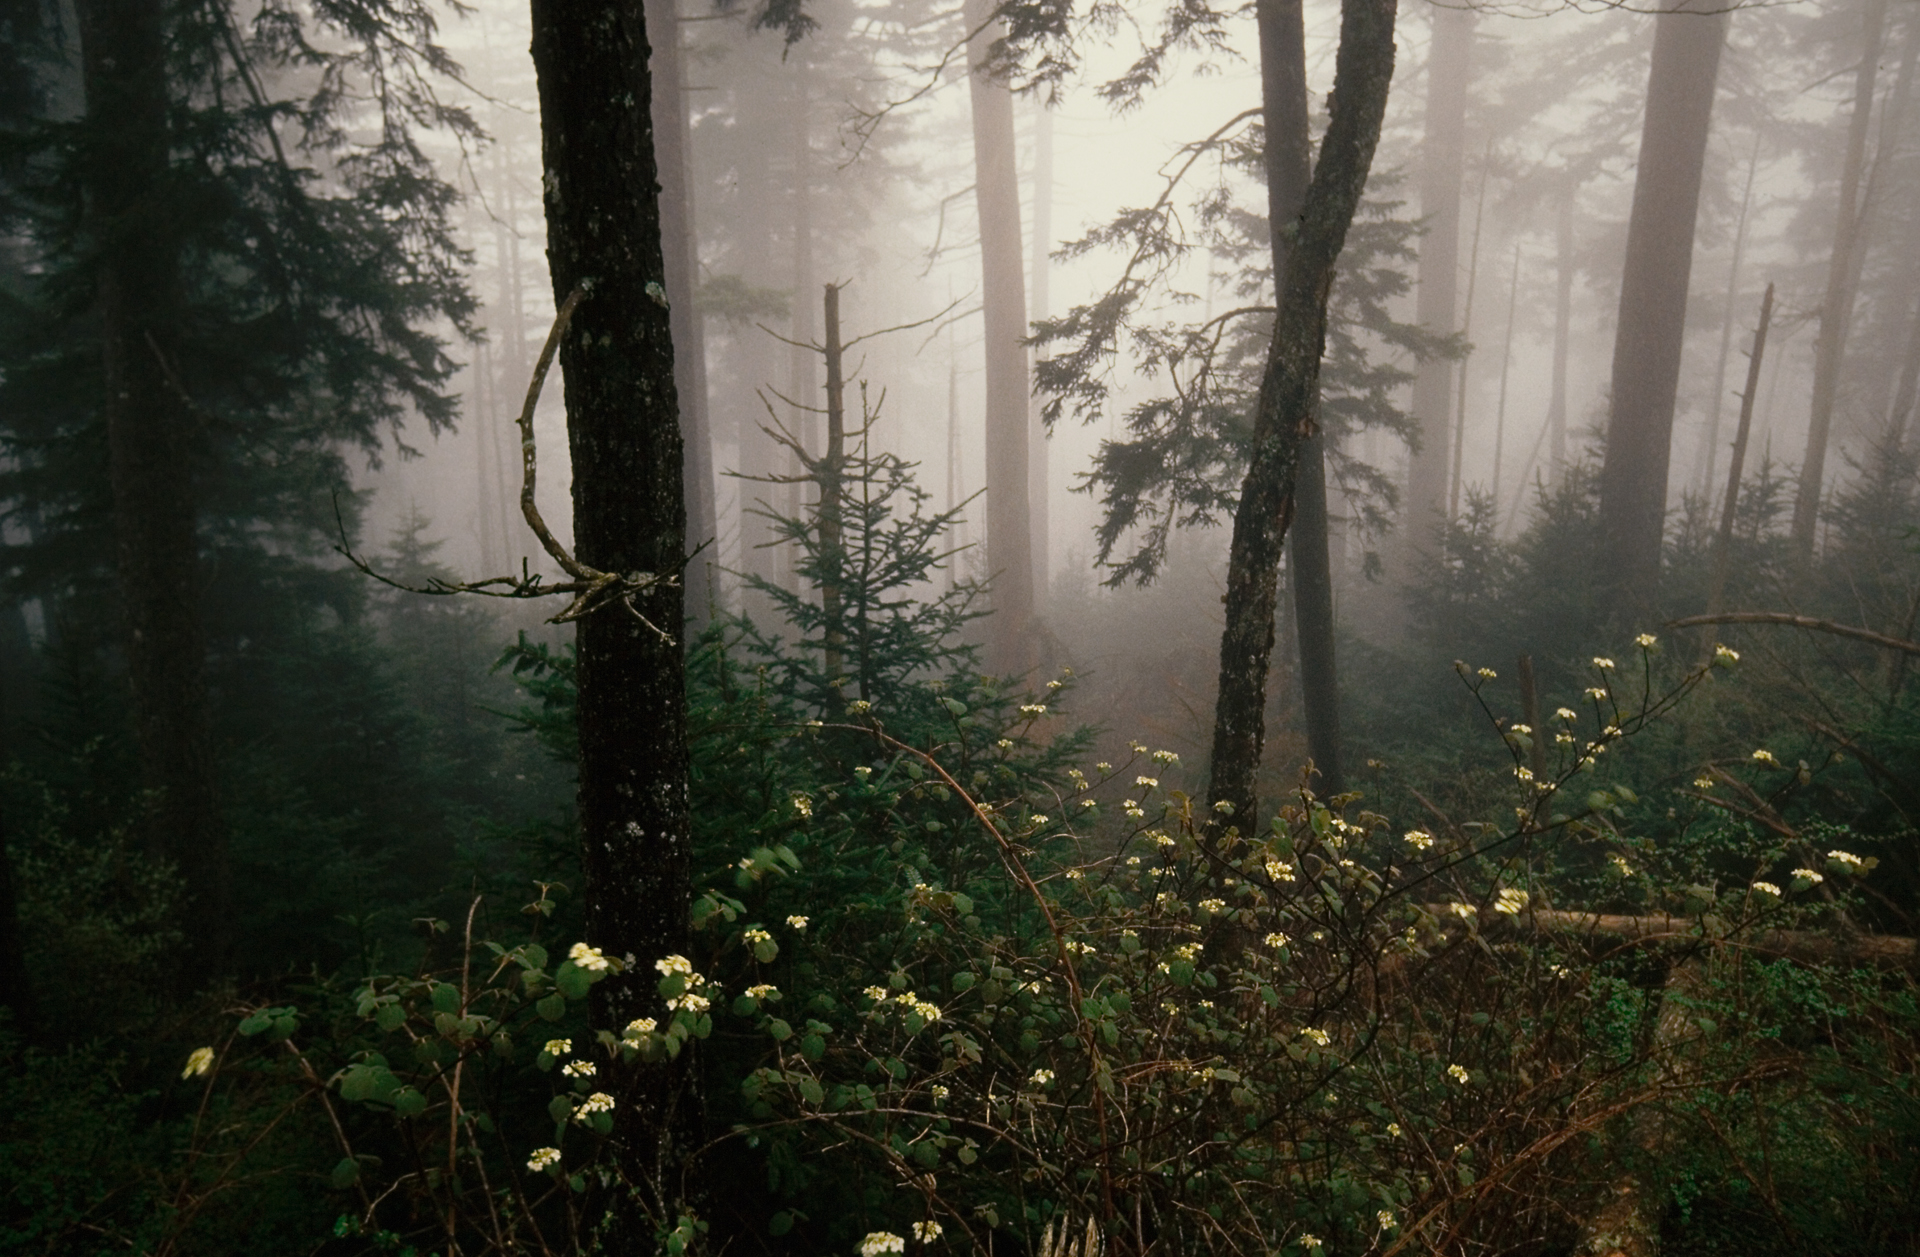 Blossoms thrive amongst fallen trees in foggy weather.  Clingman's Dome Road, Tennessee